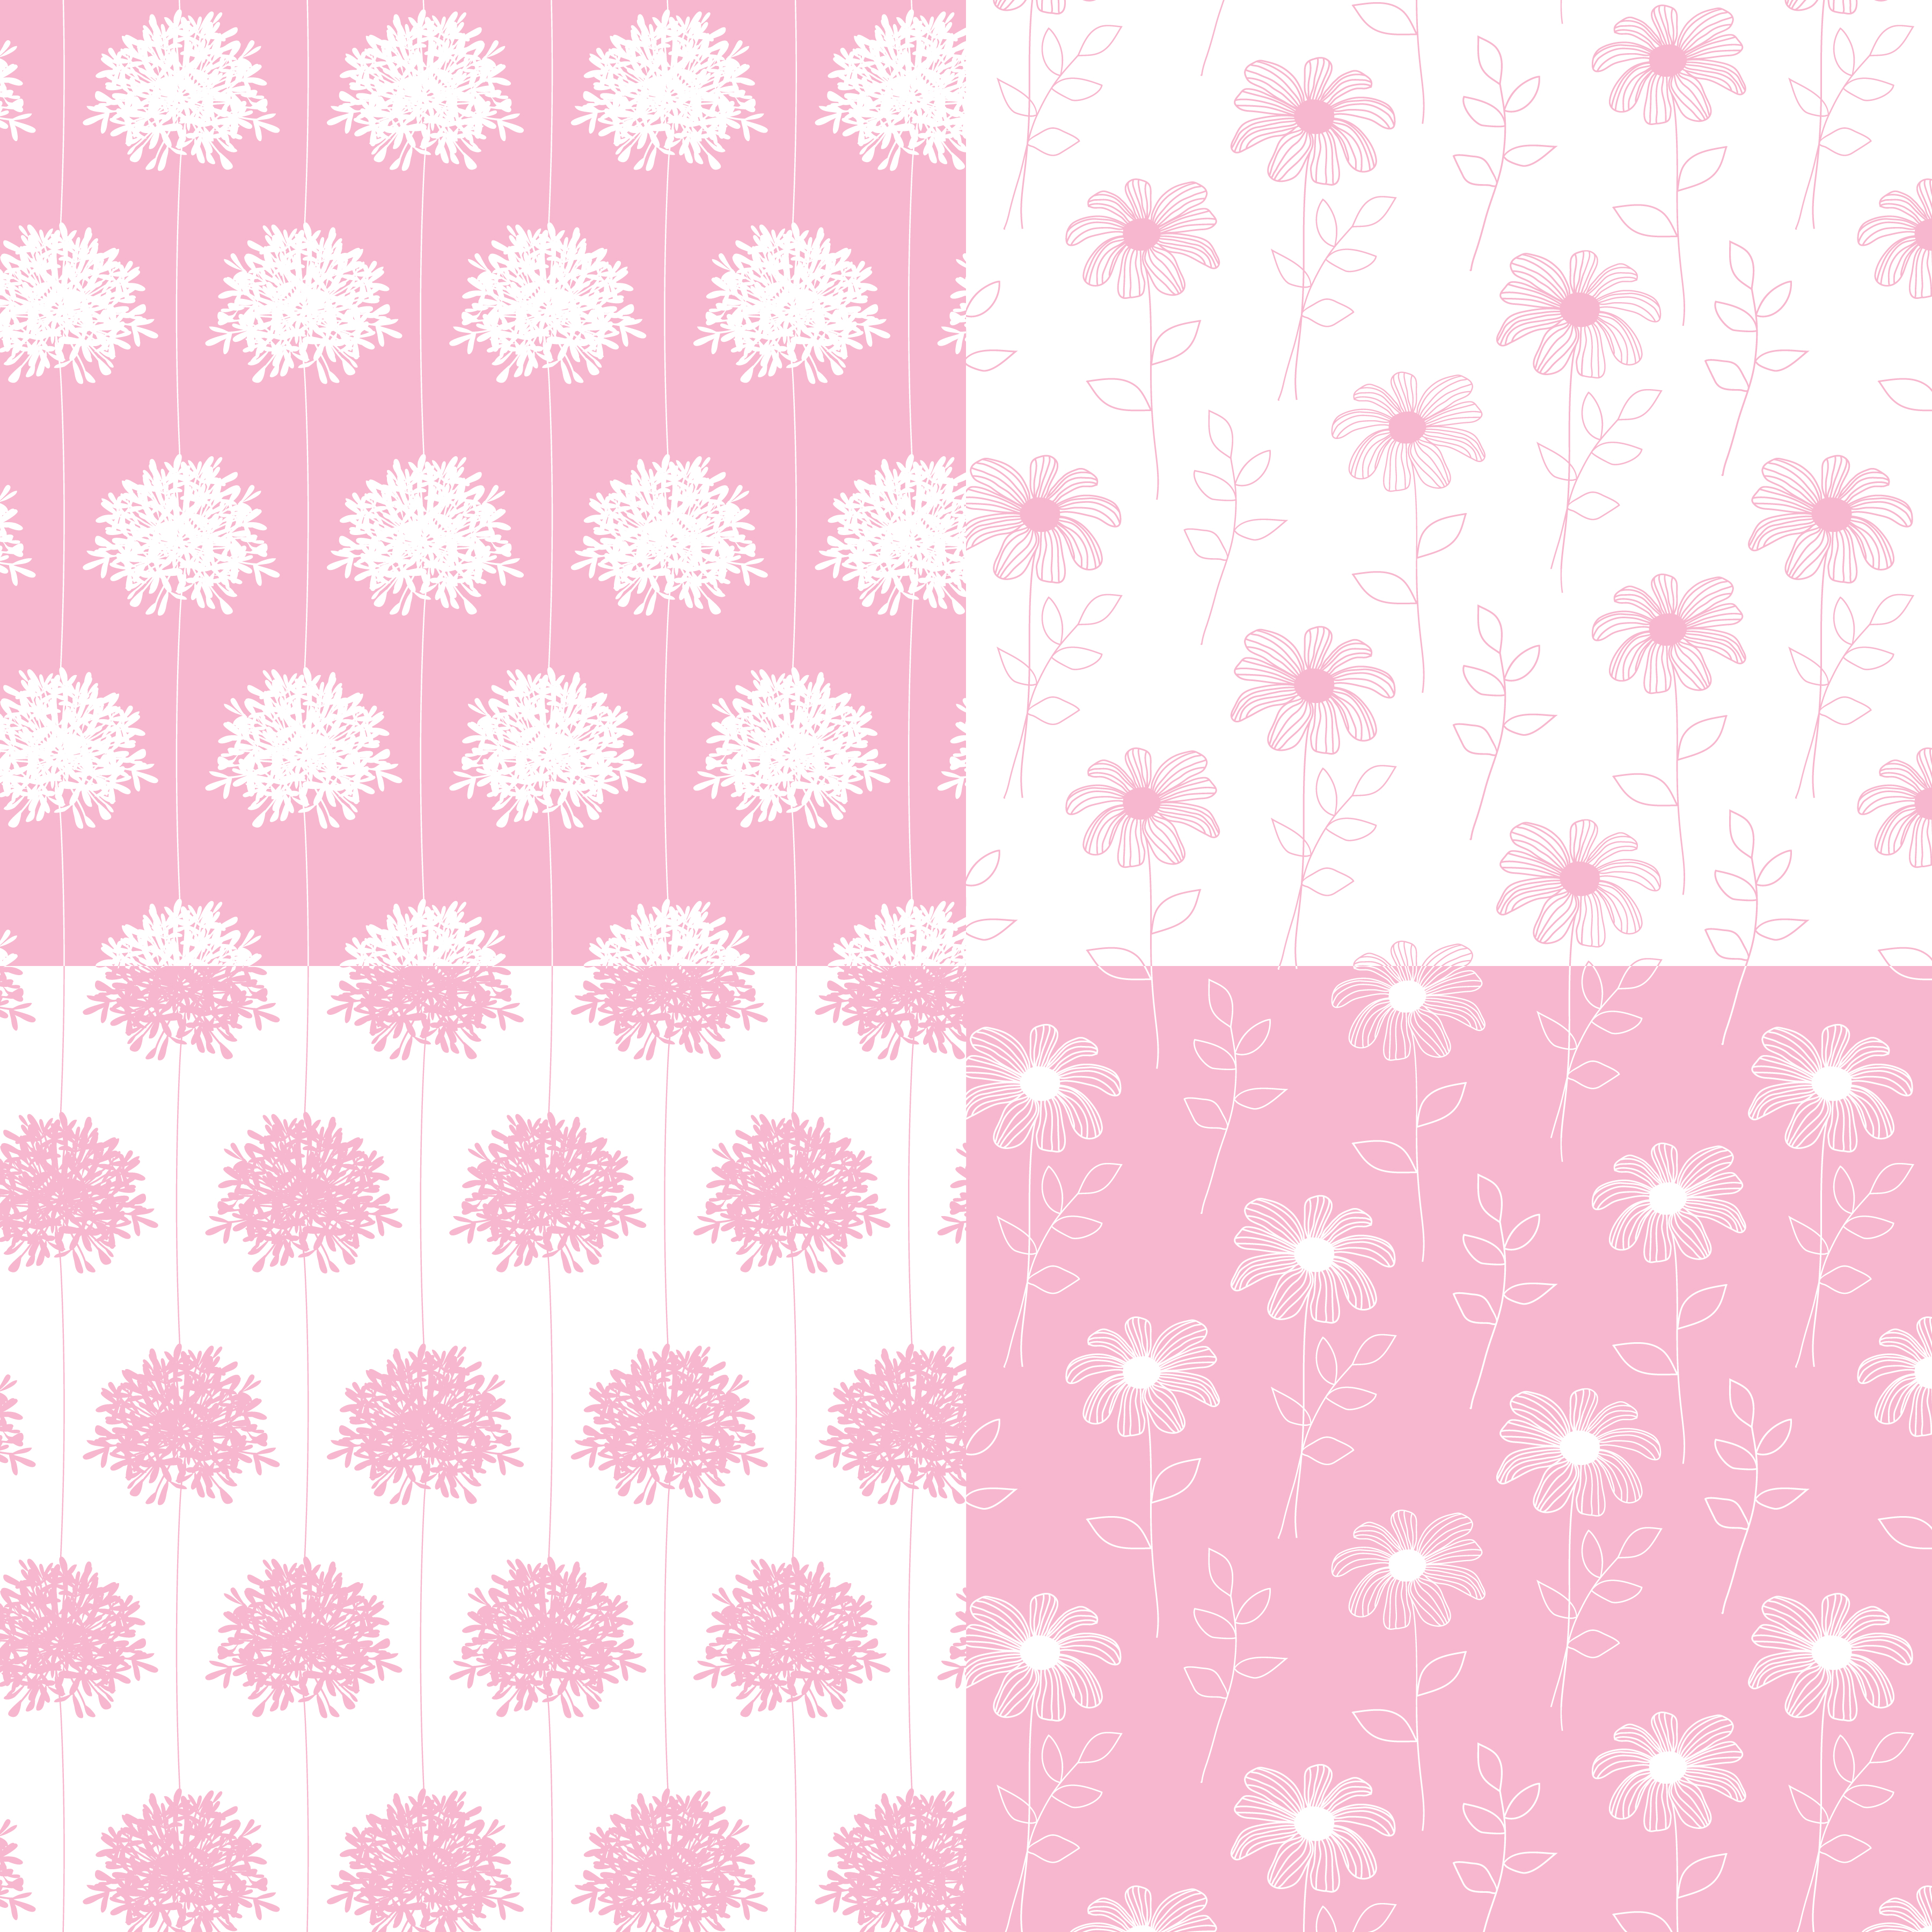 White And Pink Hand Drawn Botanical Floral Patterns Download